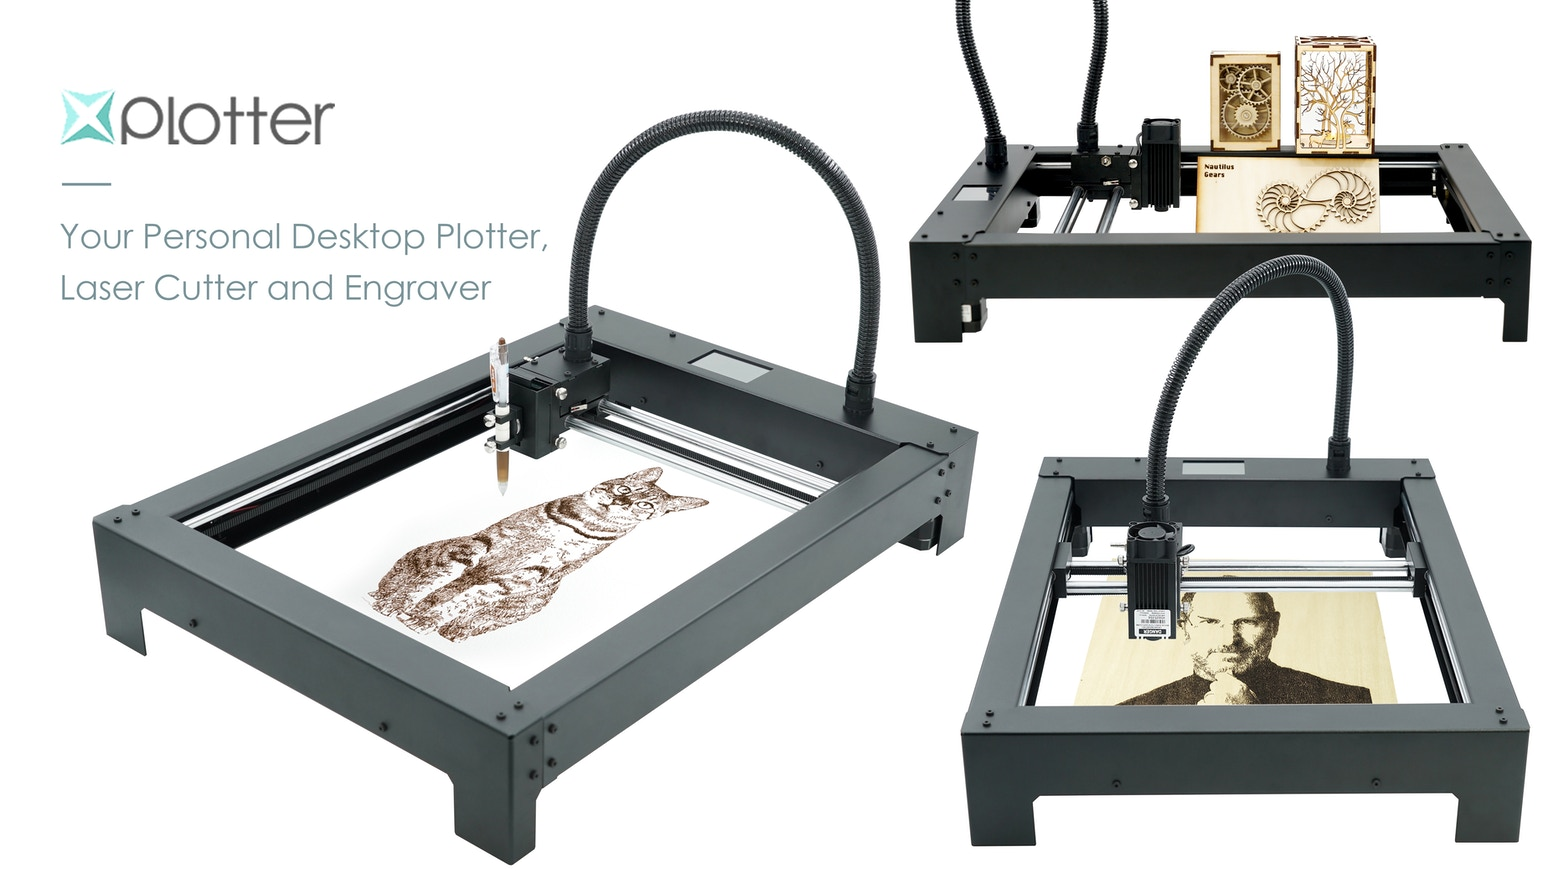 xplotter desktop plotter laser cutter and engraver by pineconerobotics kickstarter. Black Bedroom Furniture Sets. Home Design Ideas